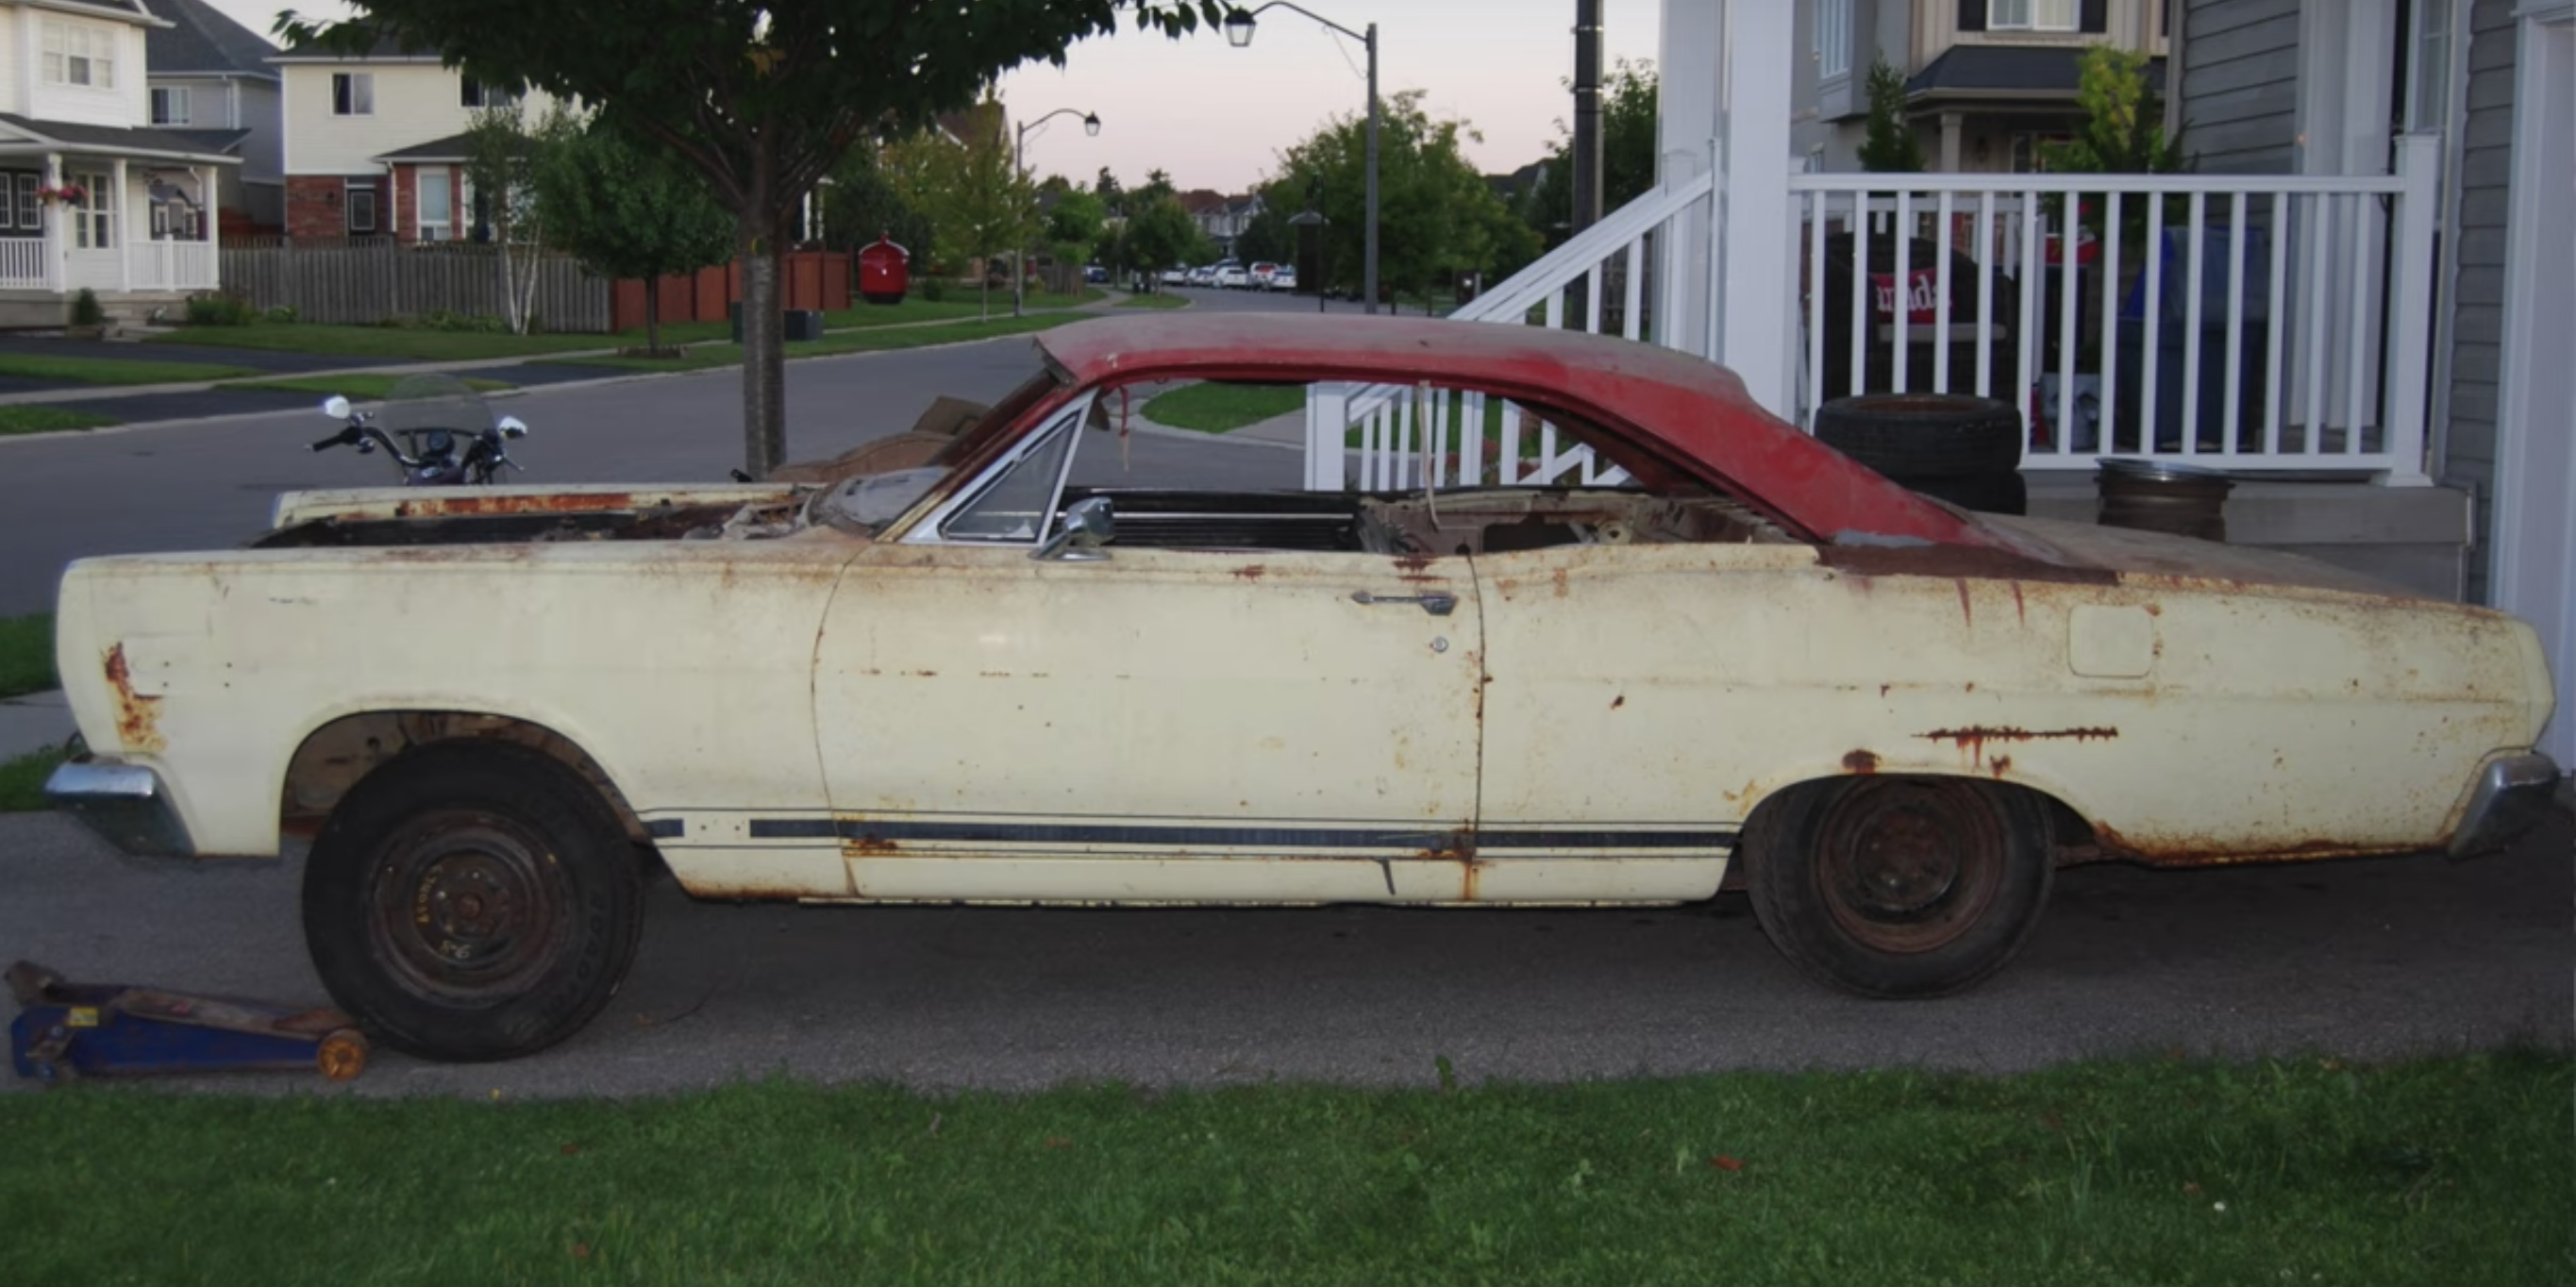 Why This Baby Boomer Gave Away His Rare Muscle Car For Free